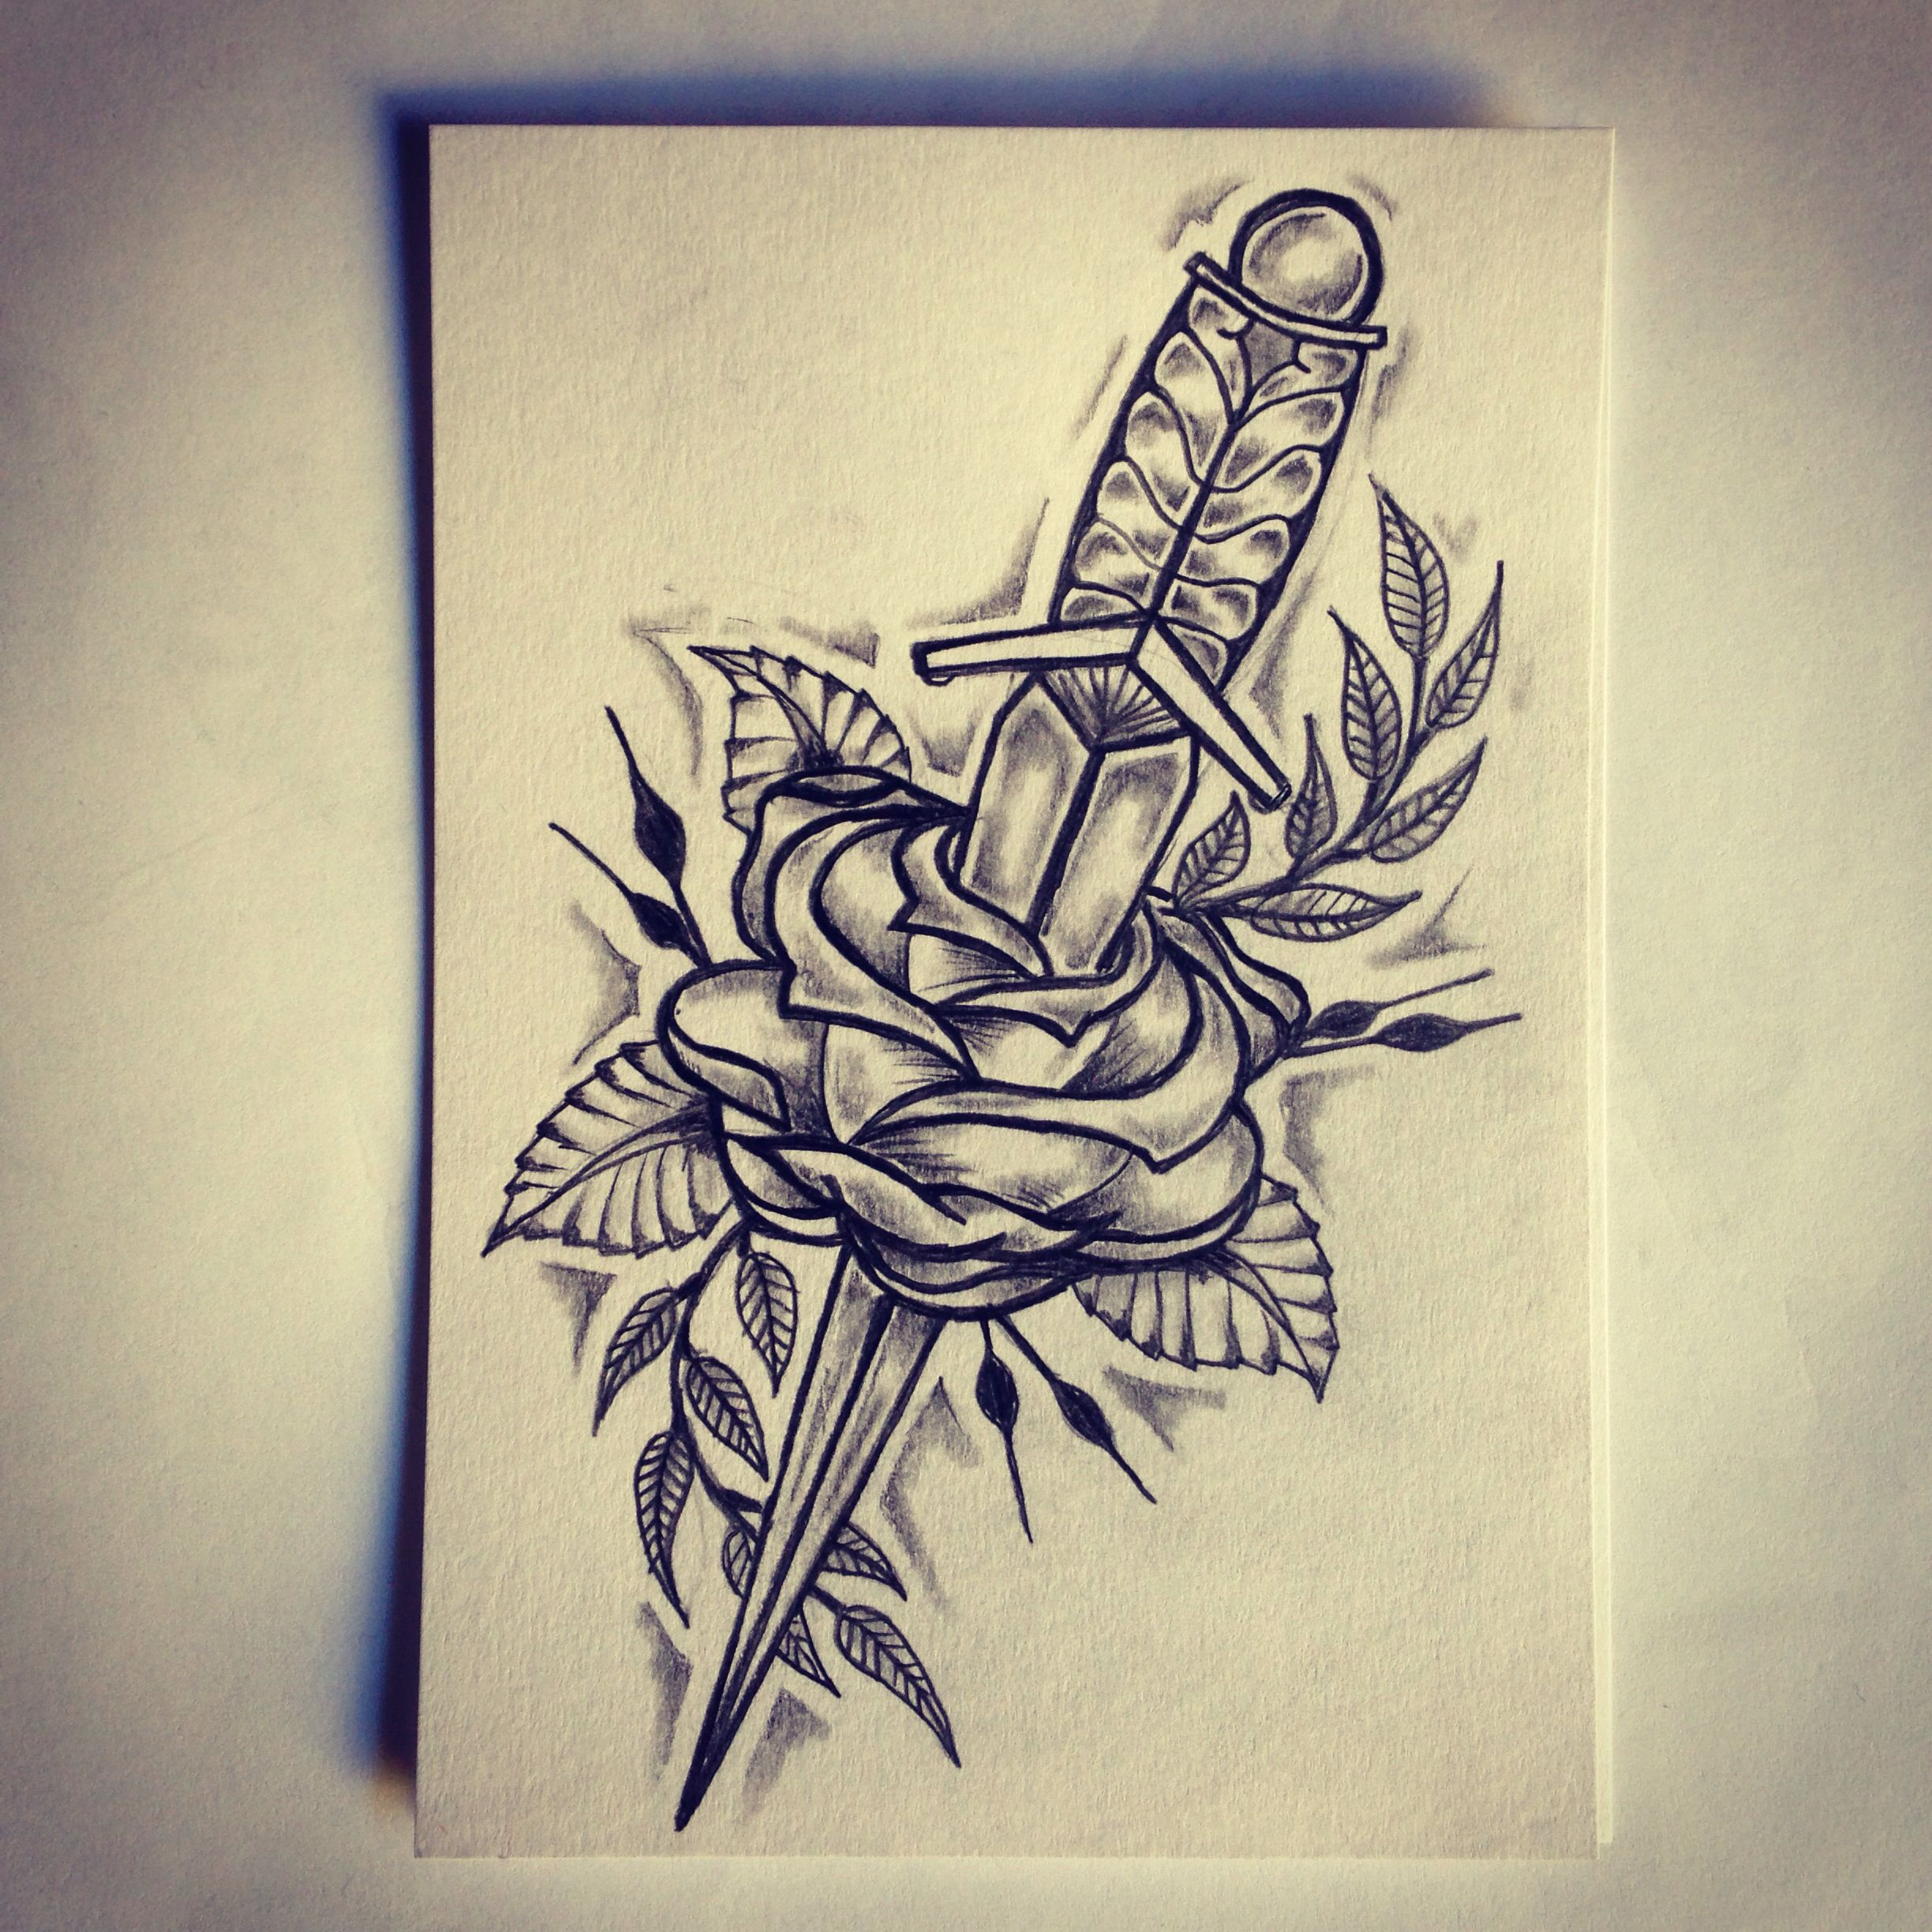 dagger rose tattoo sketch tattoo art sketches all pieces and pics are done by me. Black Bedroom Furniture Sets. Home Design Ideas